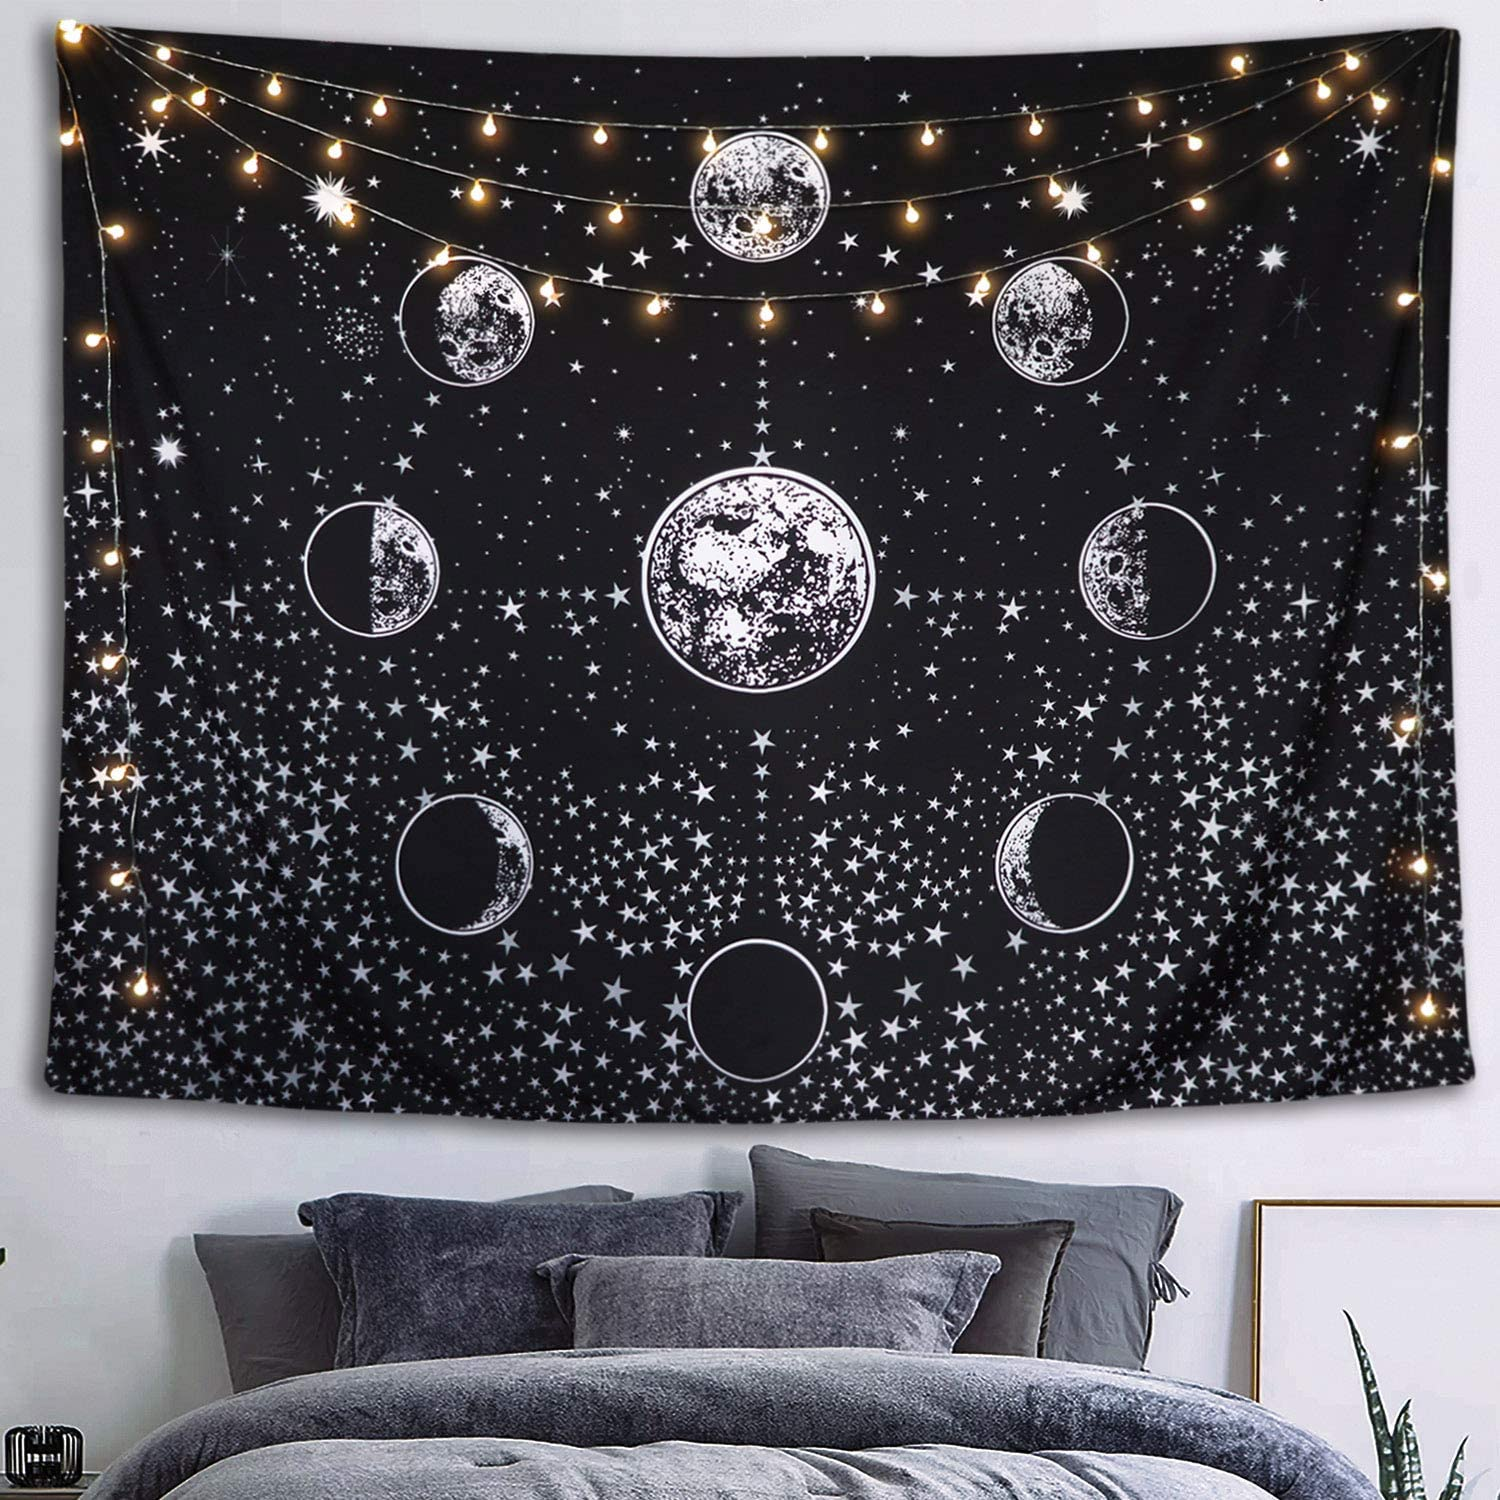 Black and White Stars Starry Night Sky Universe Tapestry 60/×80 inches Neasow Moon Phase Tapestry Wall Hanging